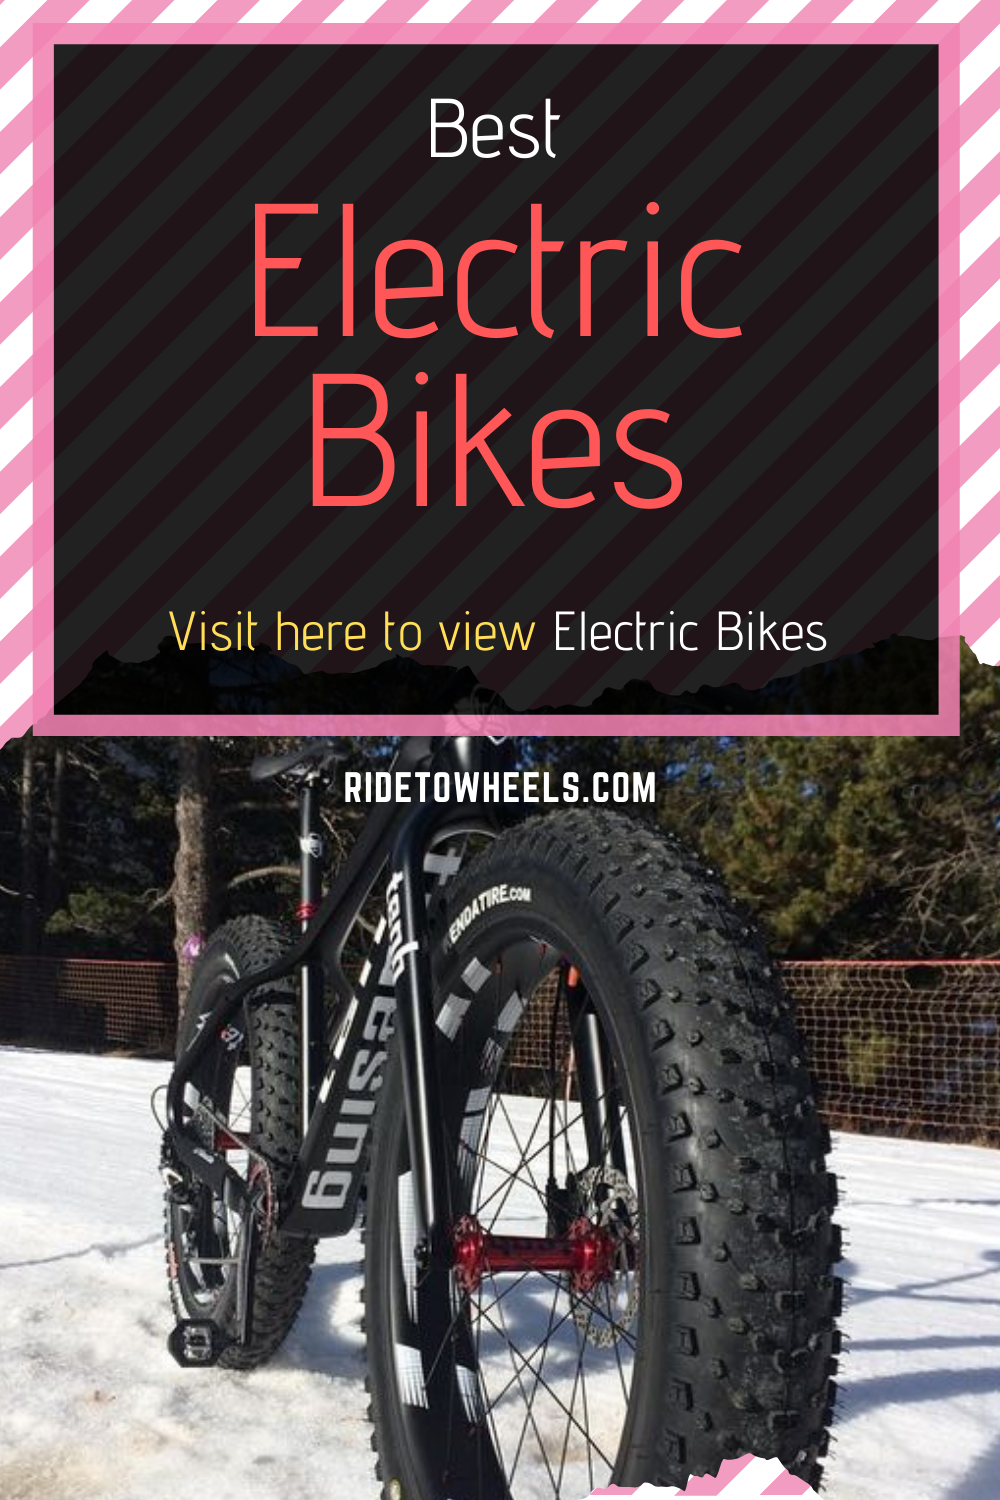 10 Best Electric Bikes Under 1000 With Images Best Electric Bikes